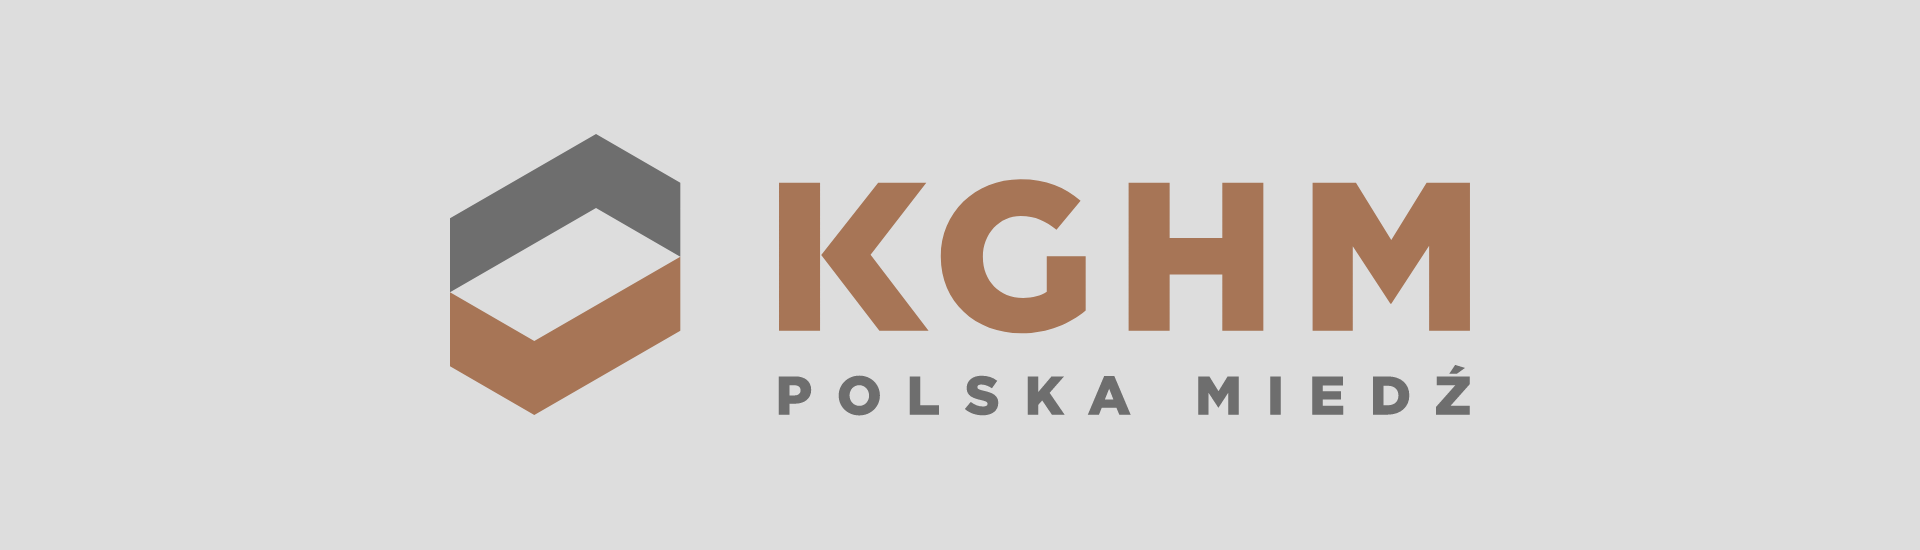 KGHM – Finding experts among 30 000 employees